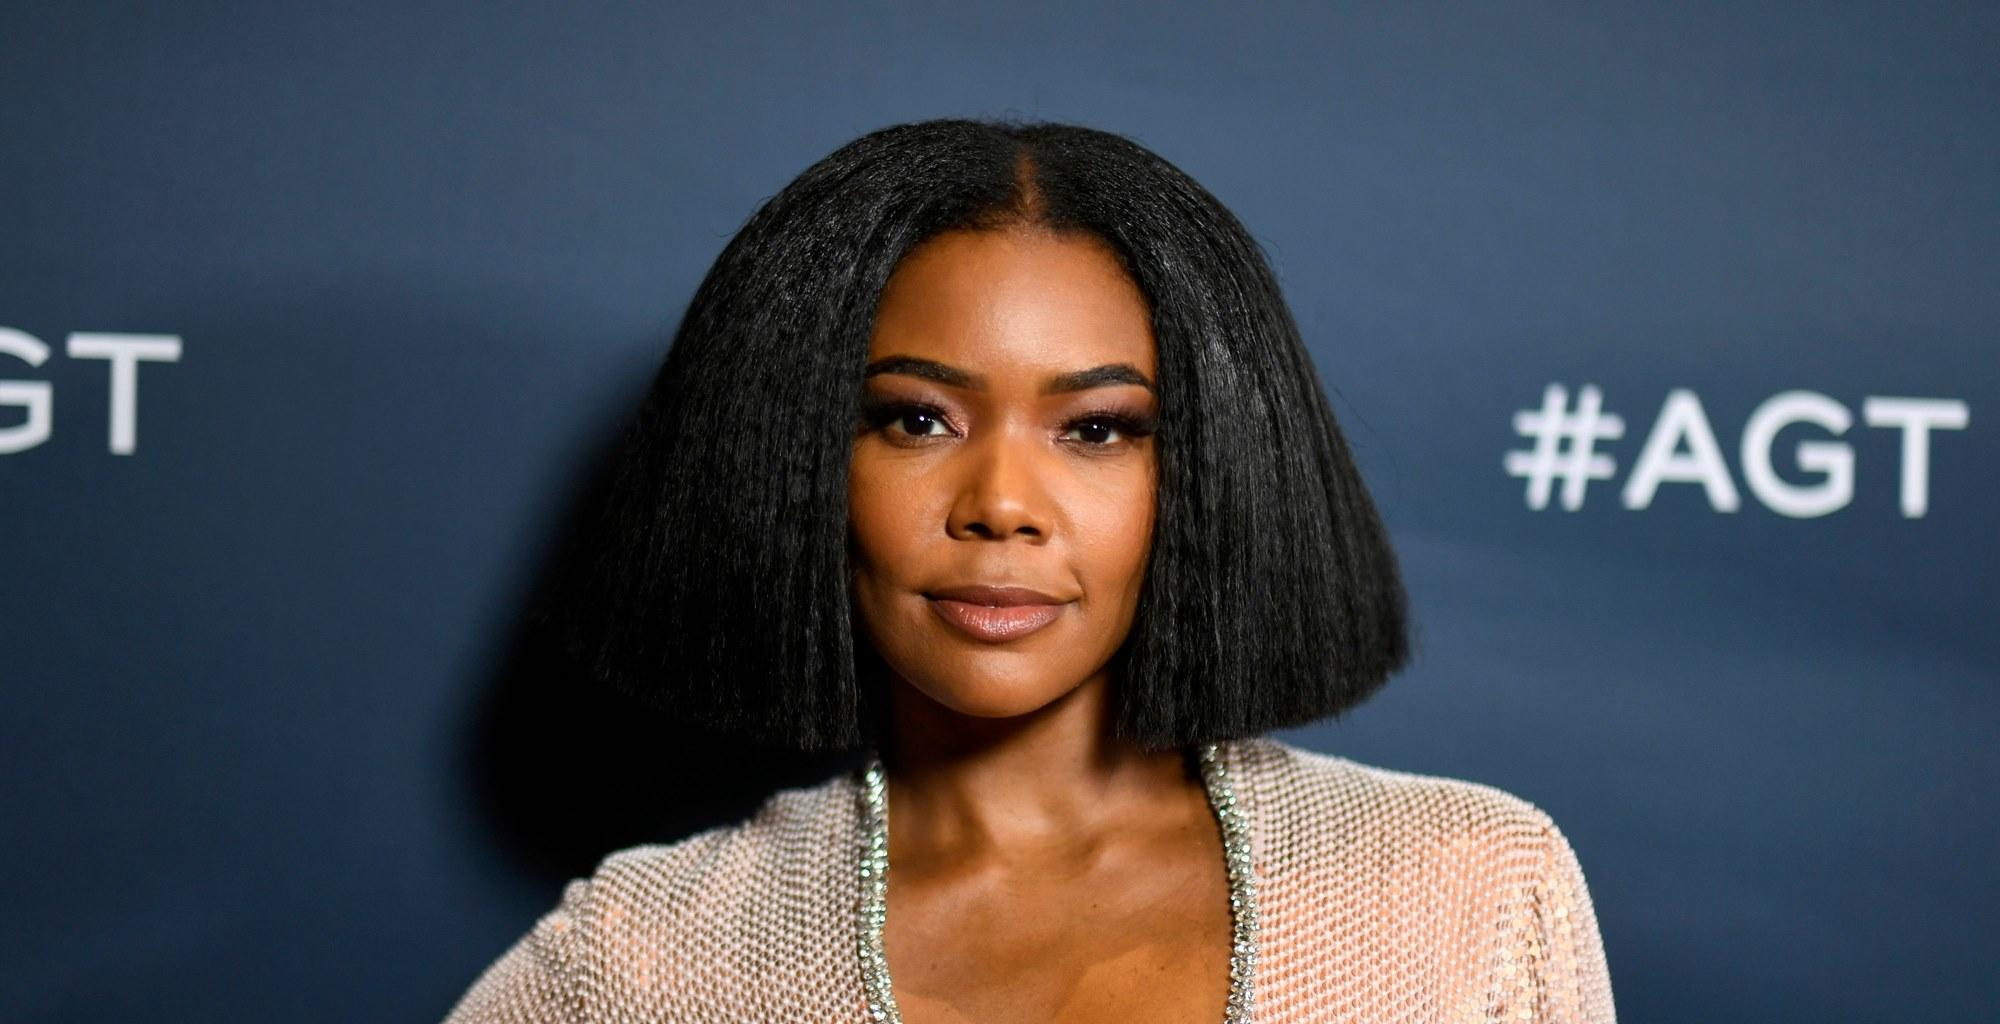 Gabrielle Union Looks Like A Teenager In New Photos With Husband Dwyane Wade's Daughter, Zaya